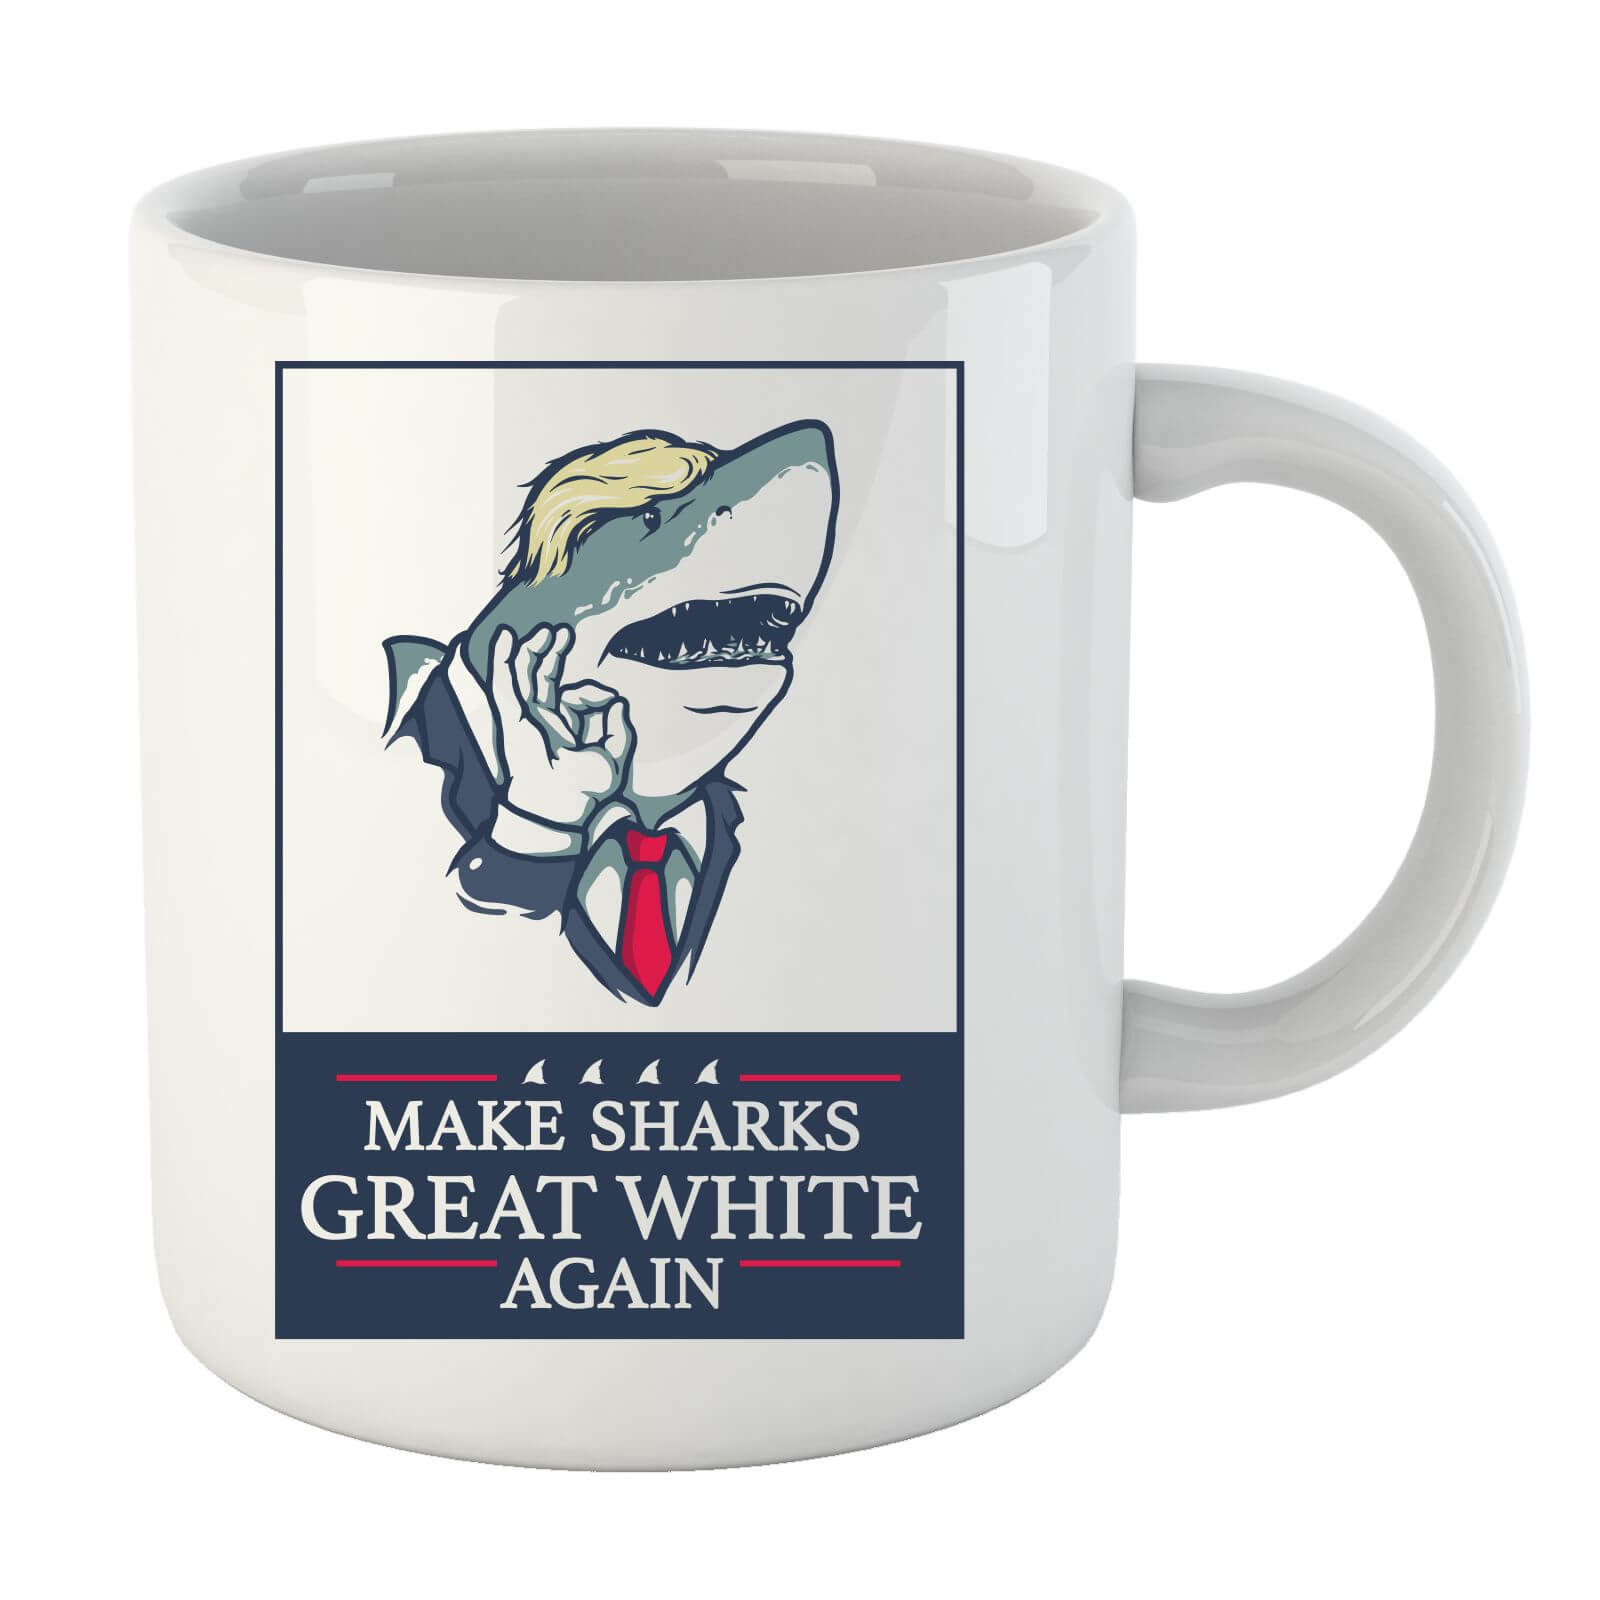 Make Sharks Great White Again Mug